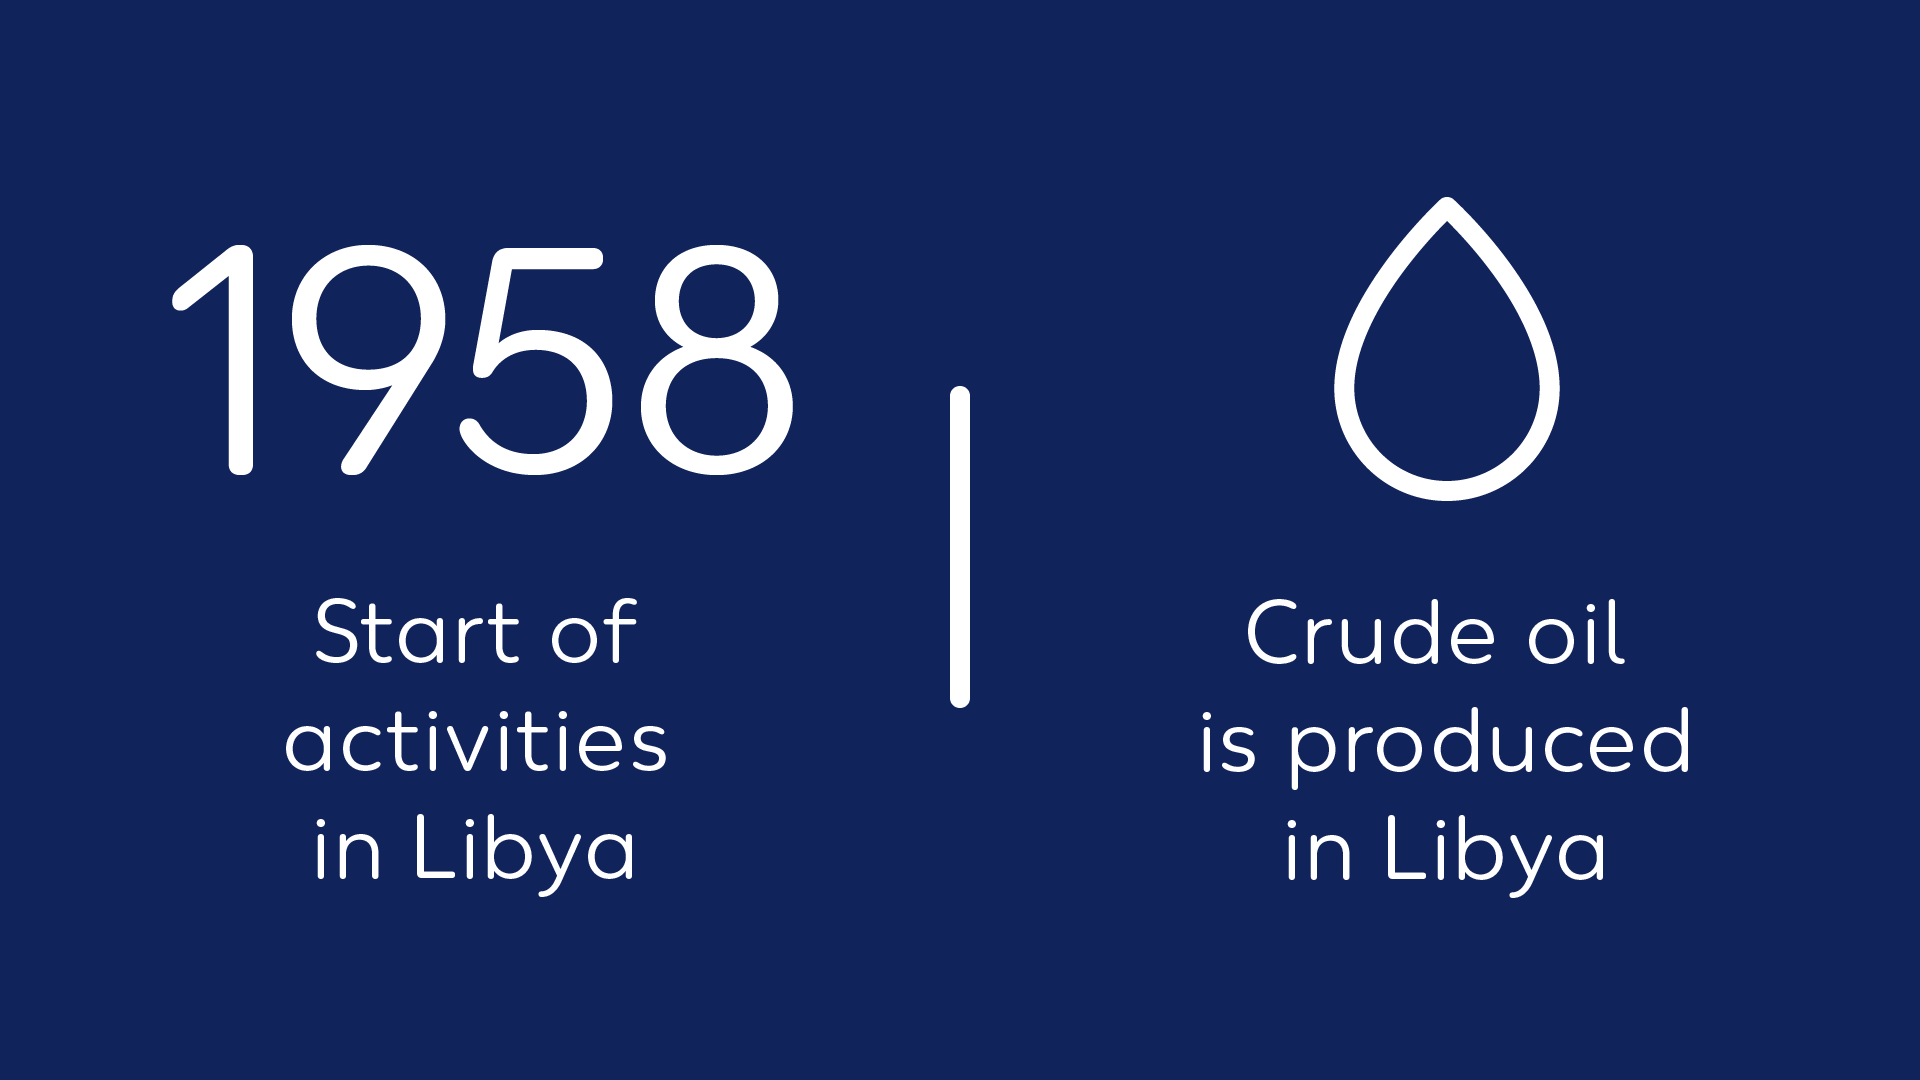 Wintershall Dea Quickfact Libya